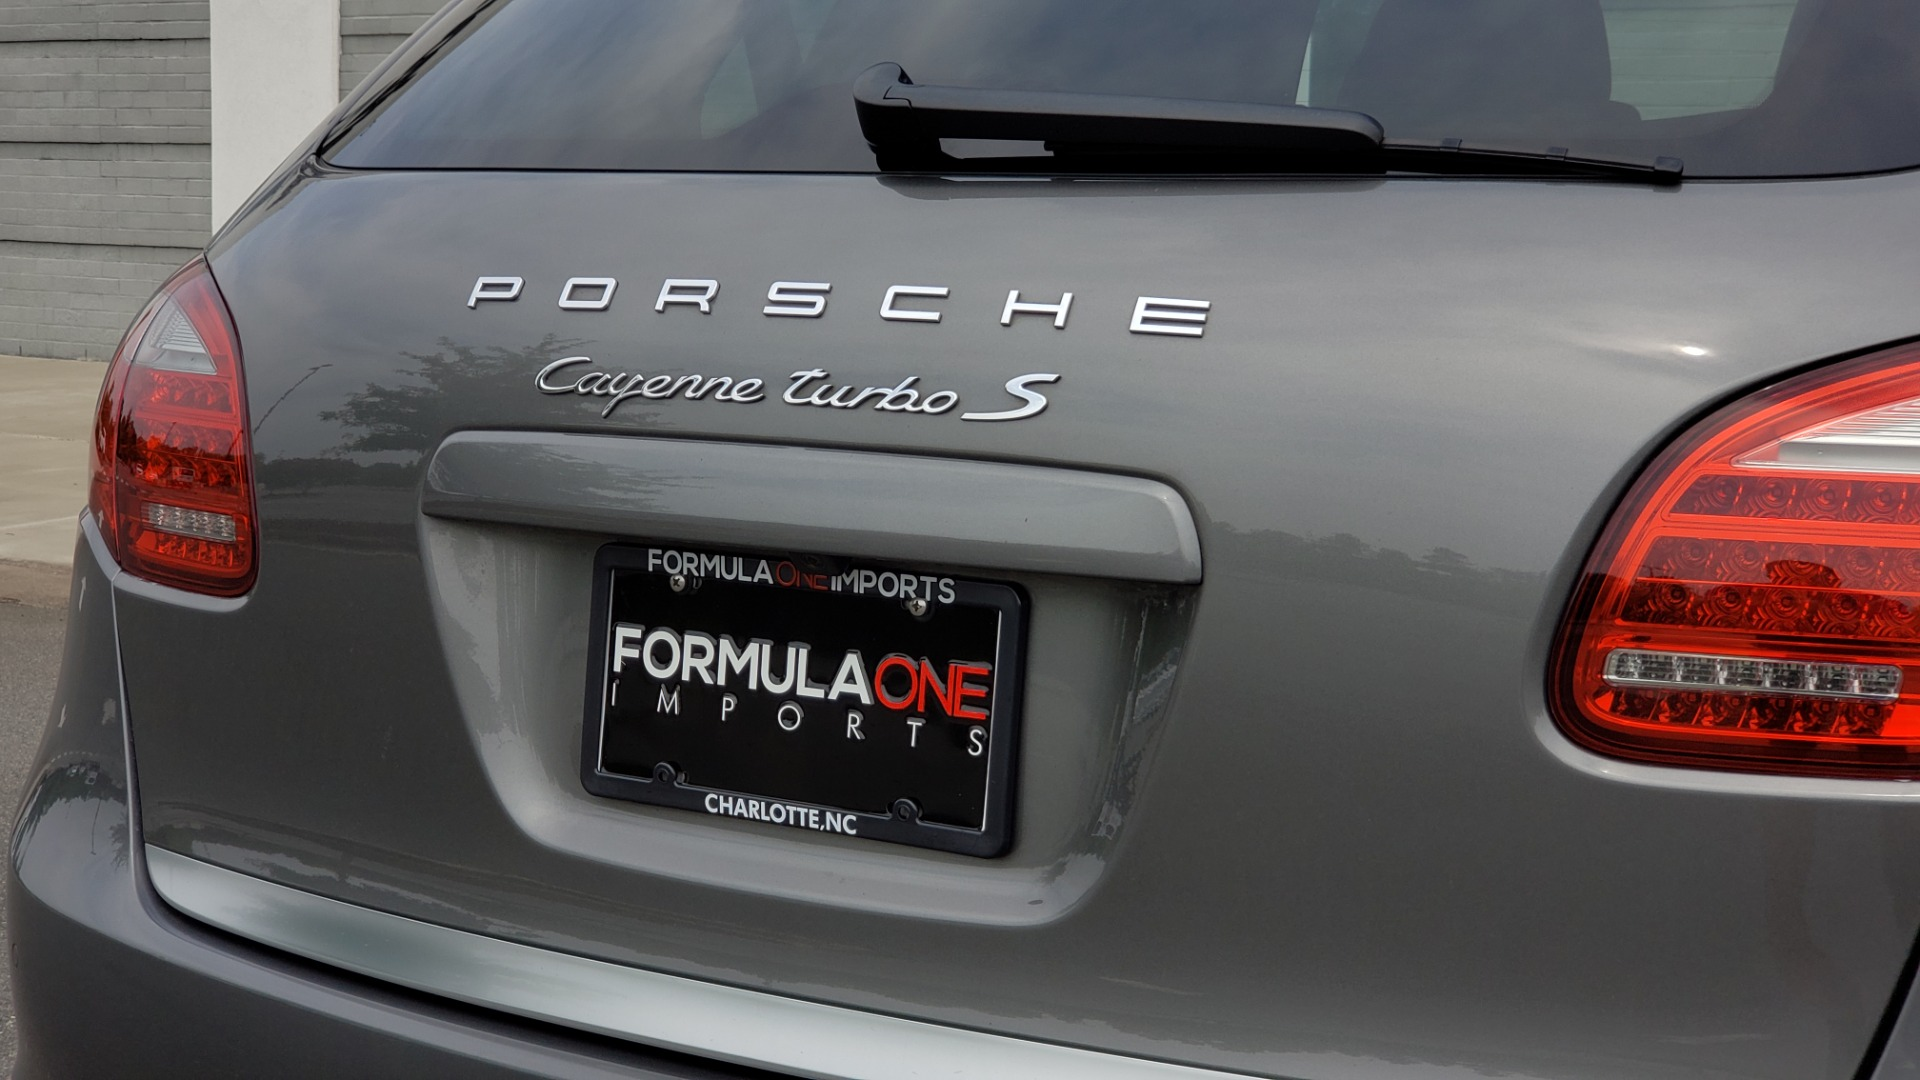 Used 2014 Porsche CAYENNE TURBO S / AWD / NAV / BOSE / PANO-ROOF / LCA / REARVIEW for sale Sold at Formula Imports in Charlotte NC 28227 35